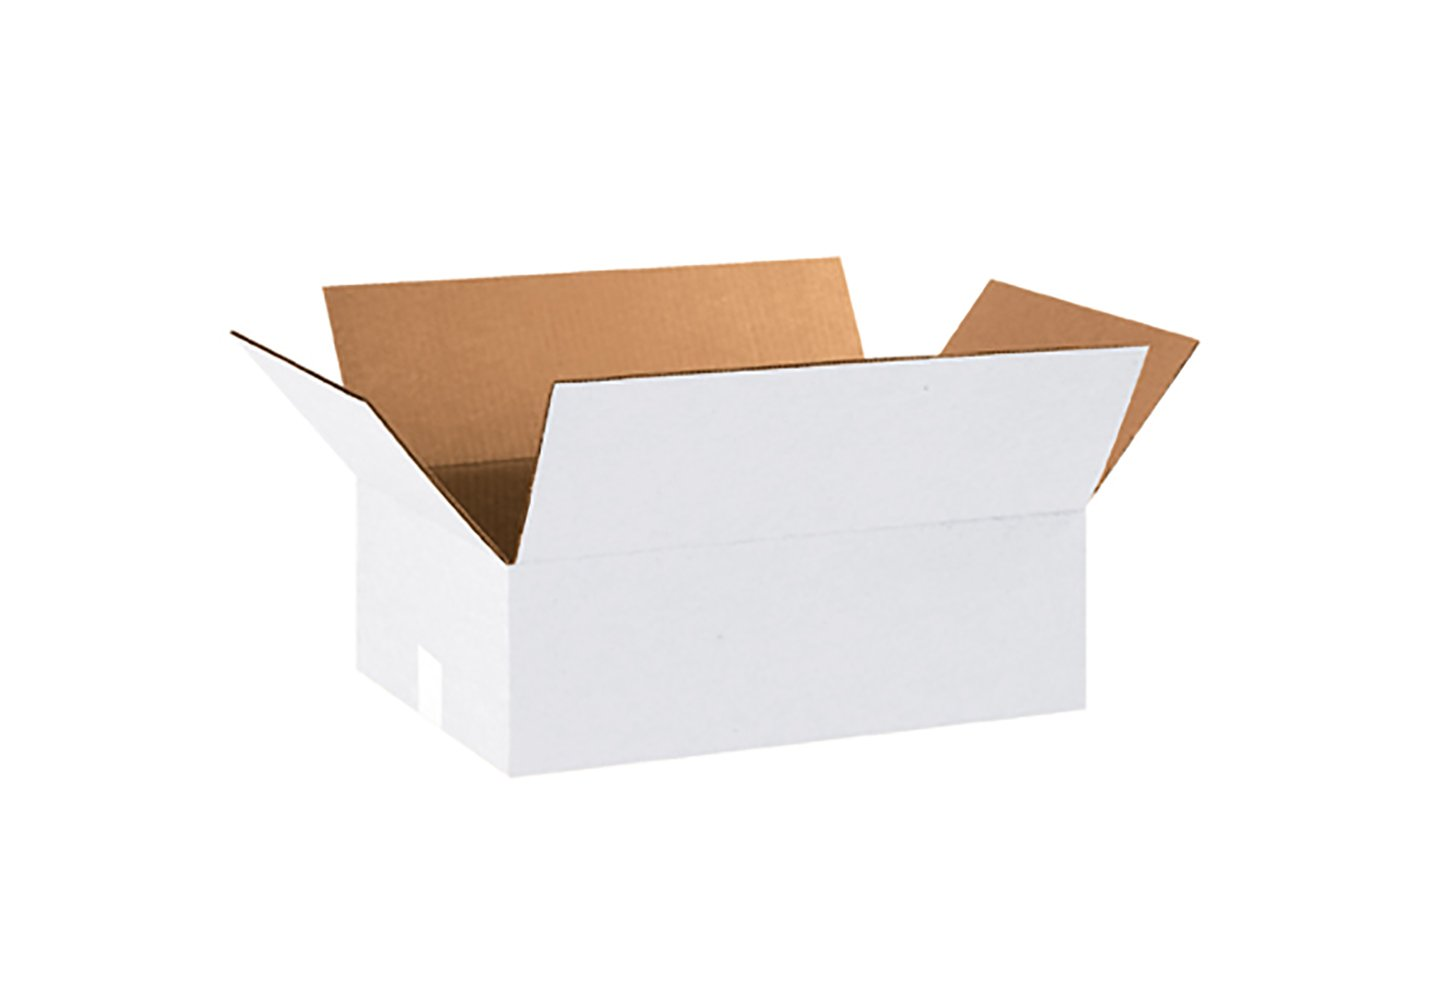 RetailSource B181206WB250 White Corrugated Box, 6'' Height, 12'' Width, 18'' Length, Brown (Pack of 250)